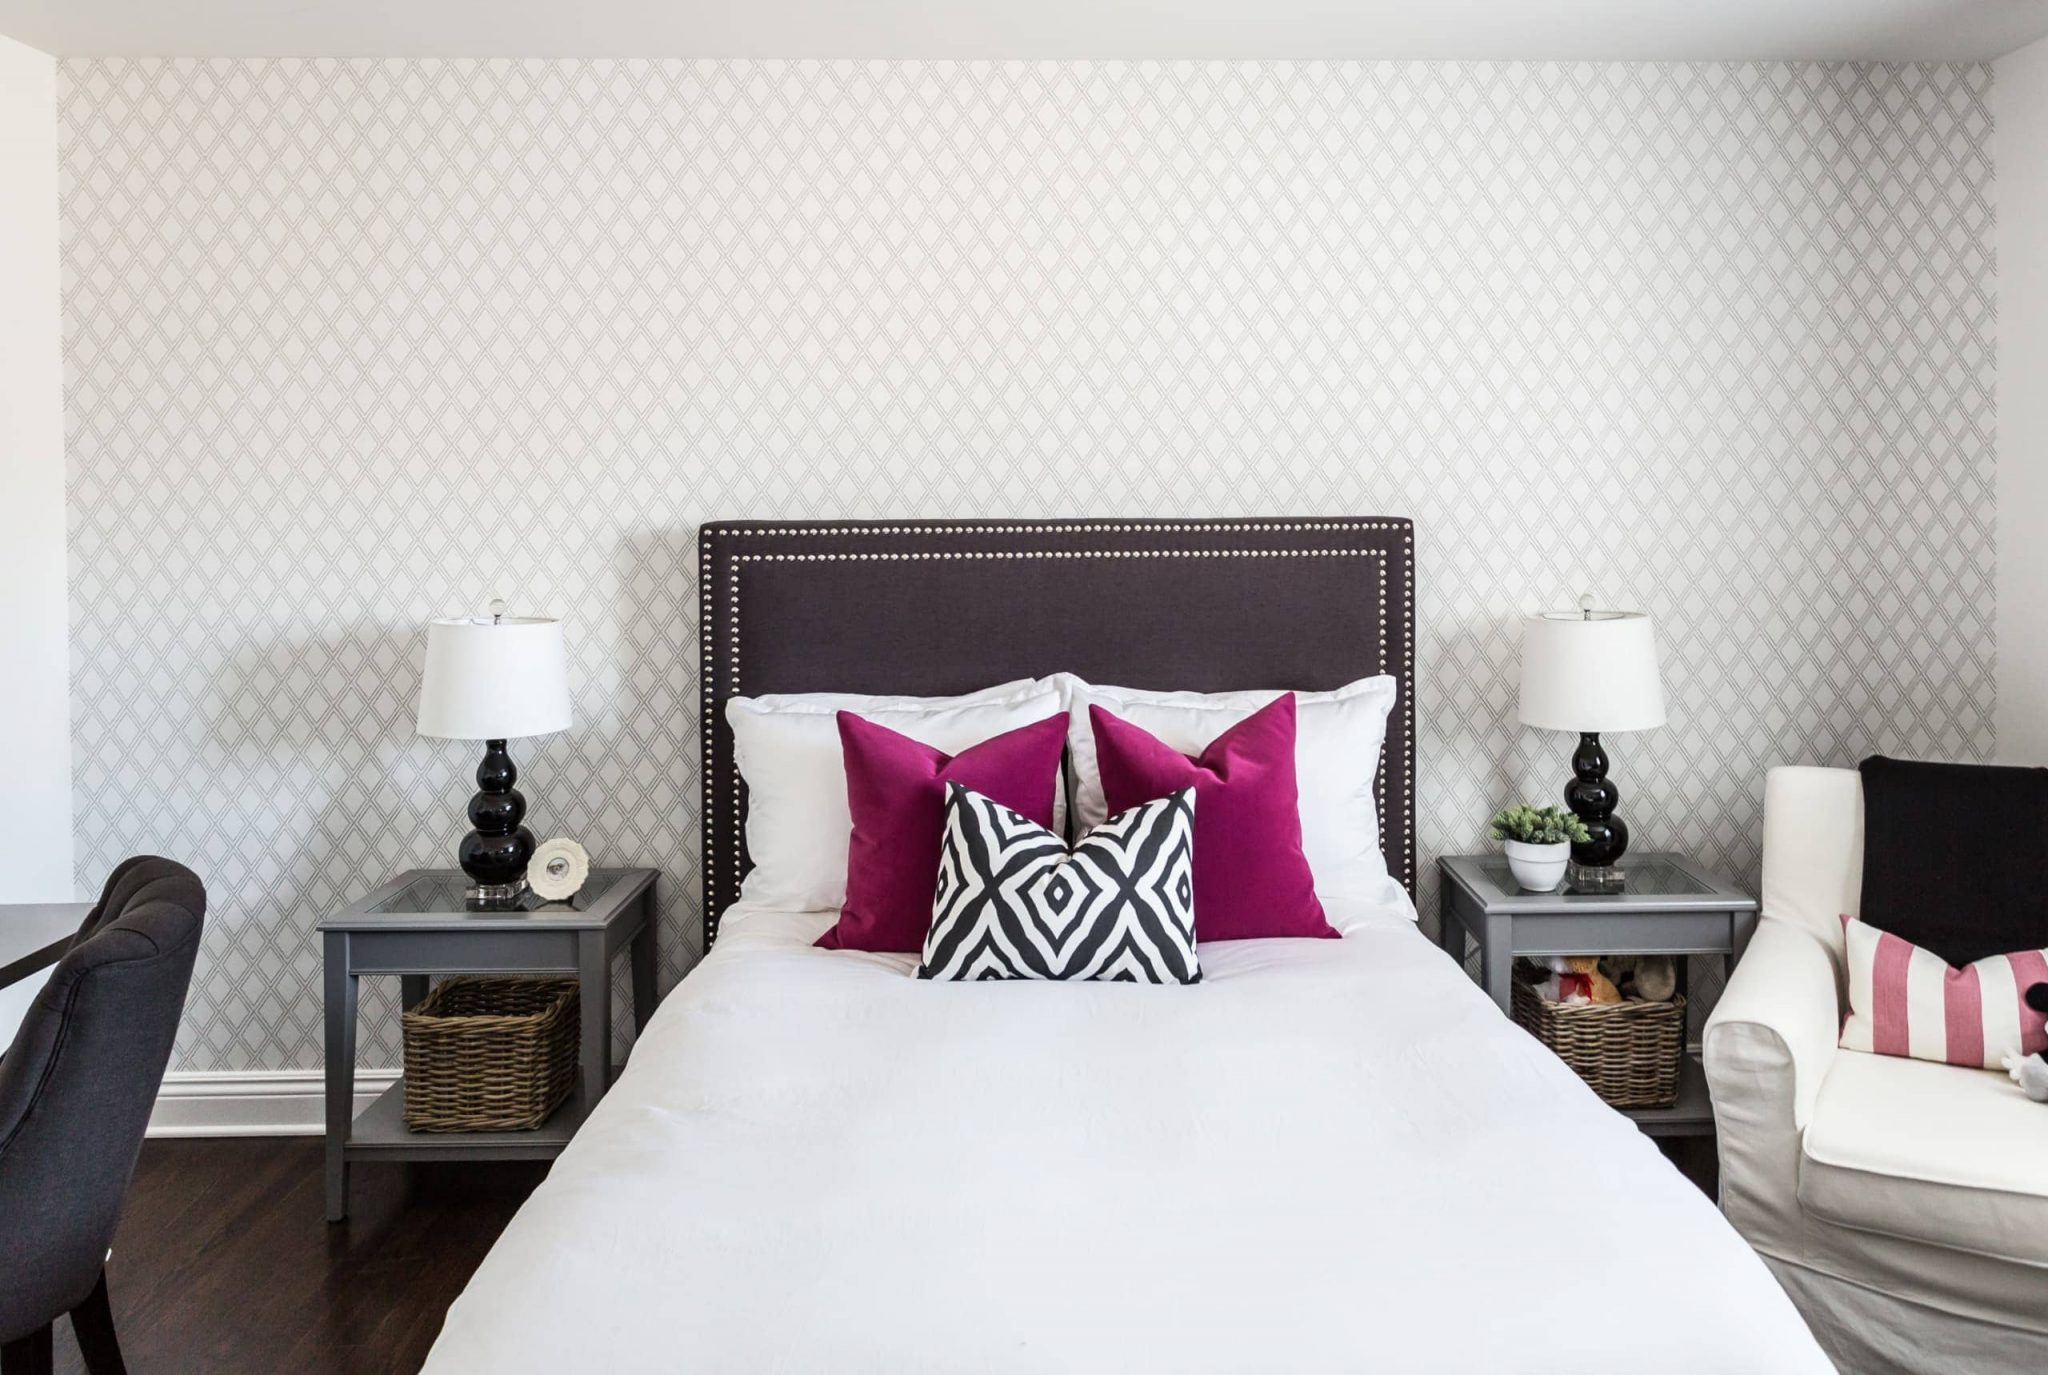 White bed withing a bedroom with bedside tables on each side